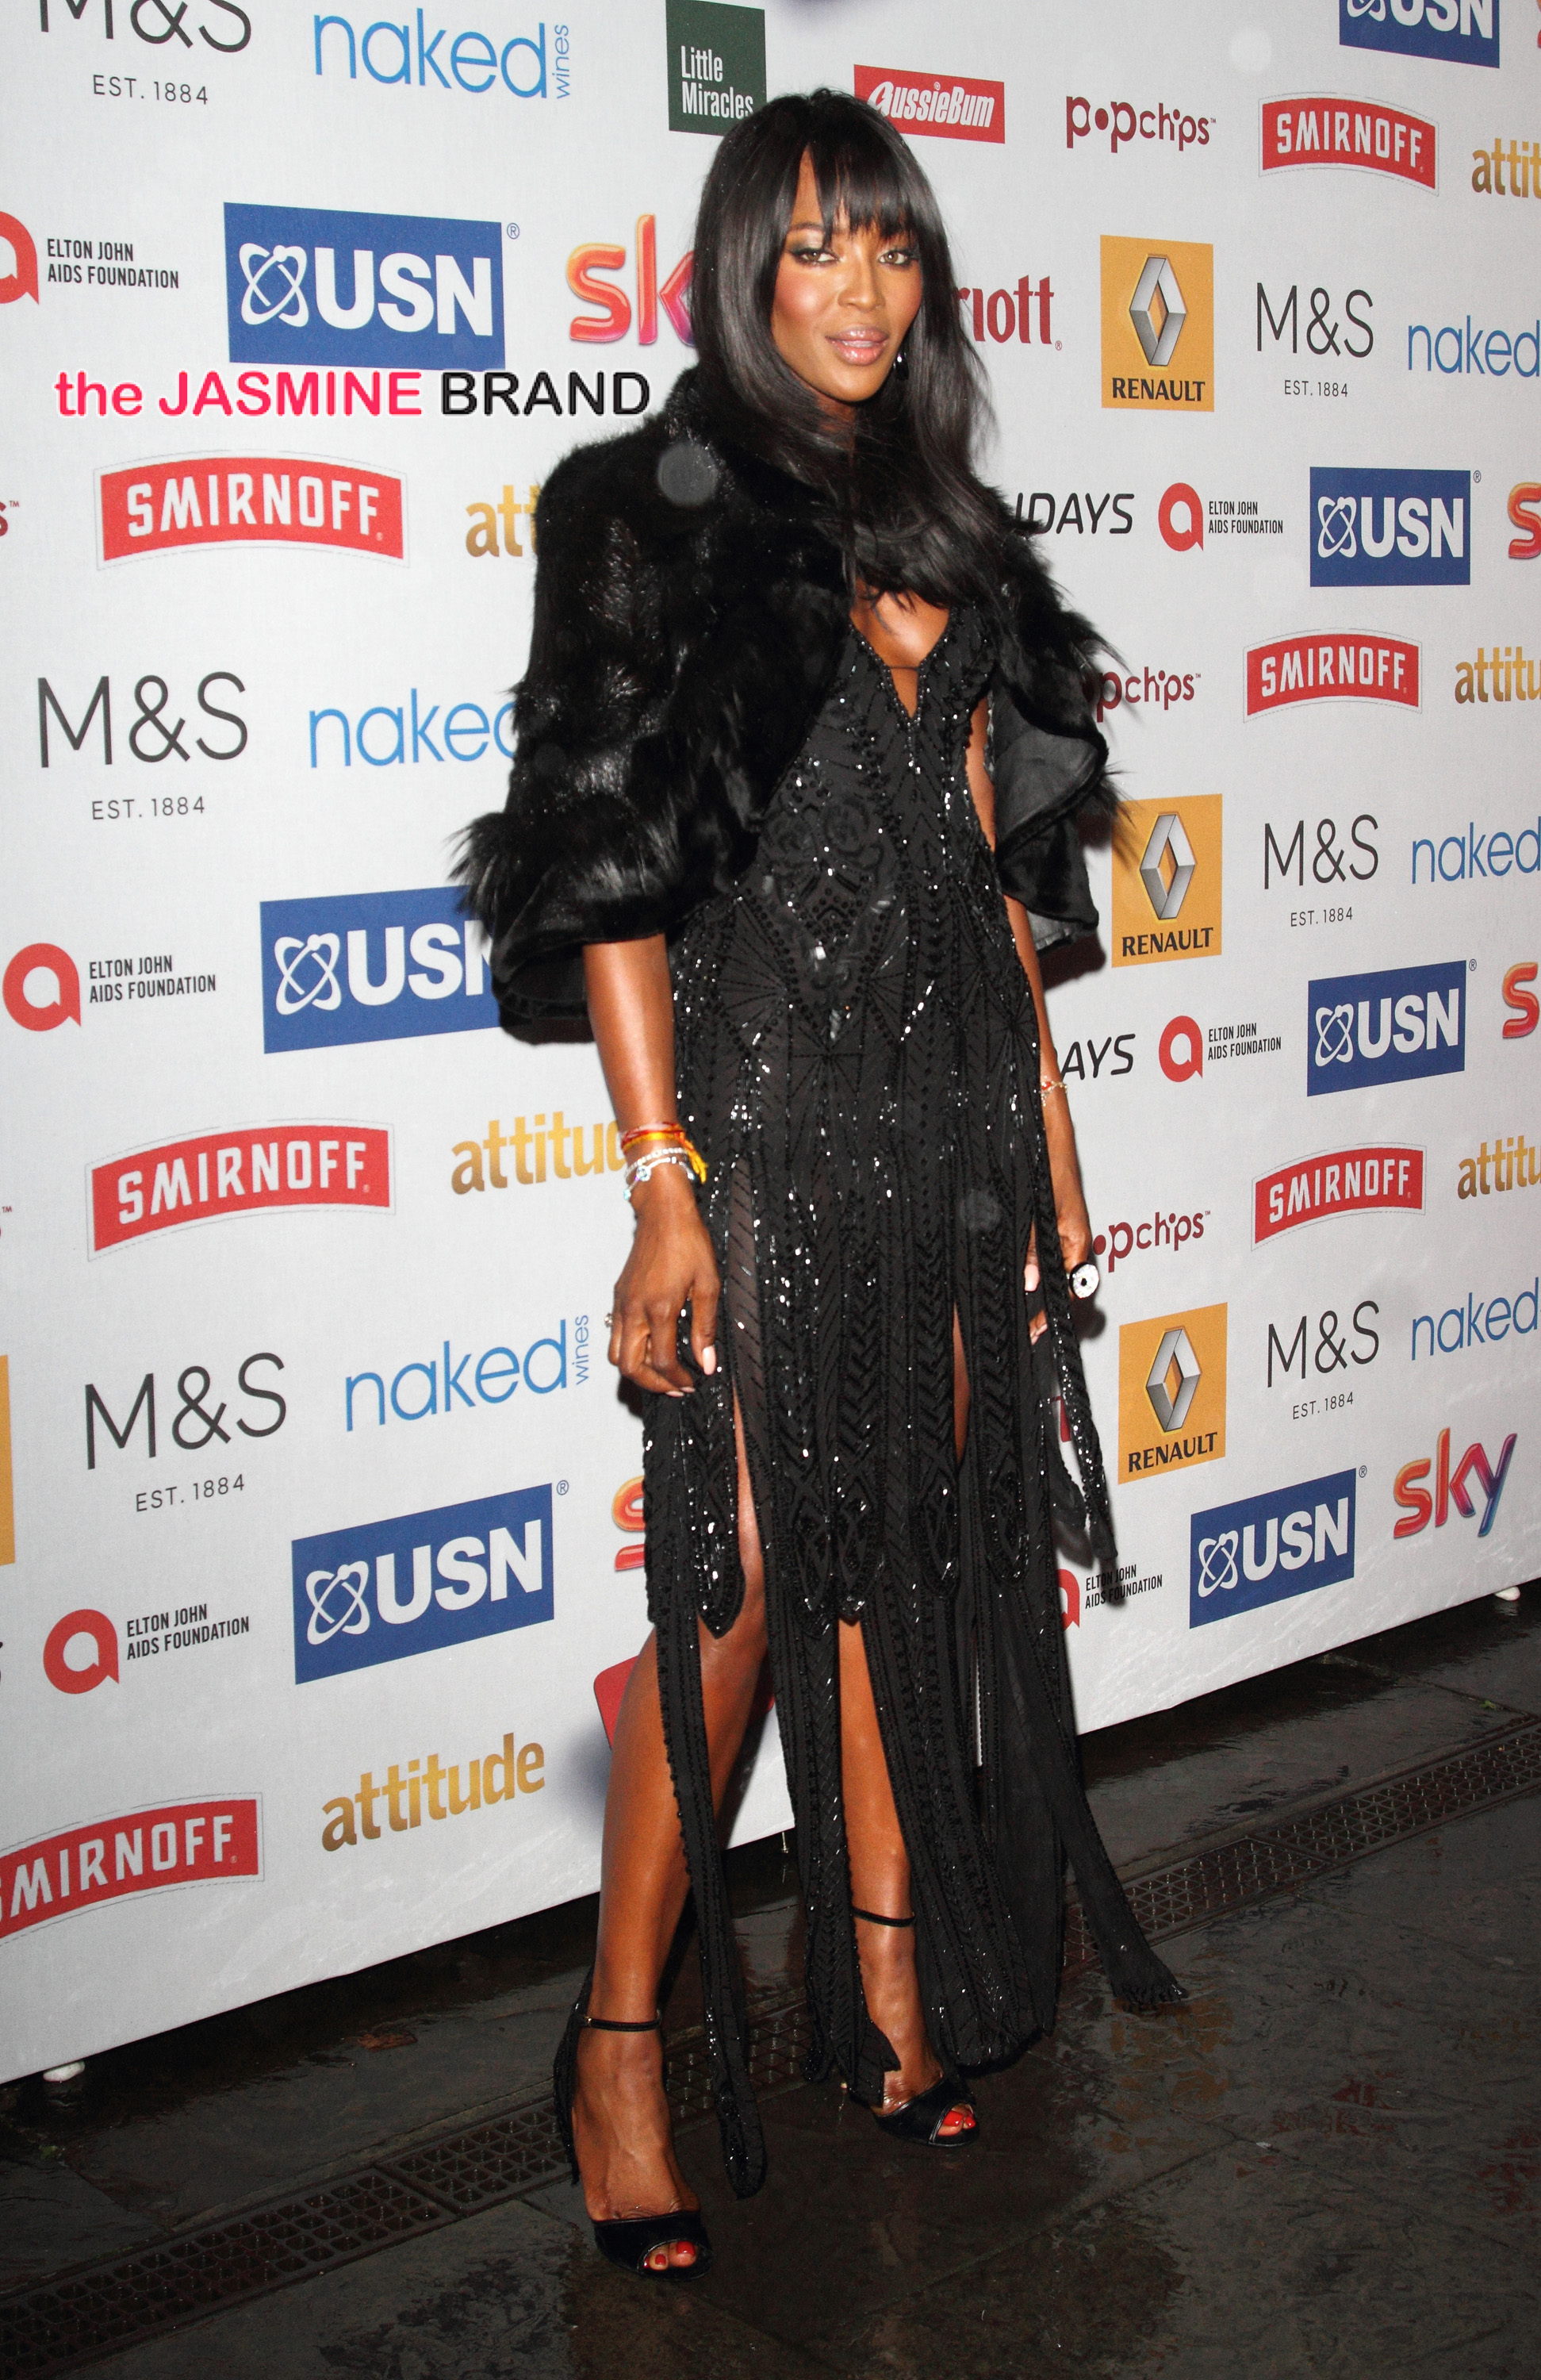 Attitude Magazine Awards 2014 - Arrivals